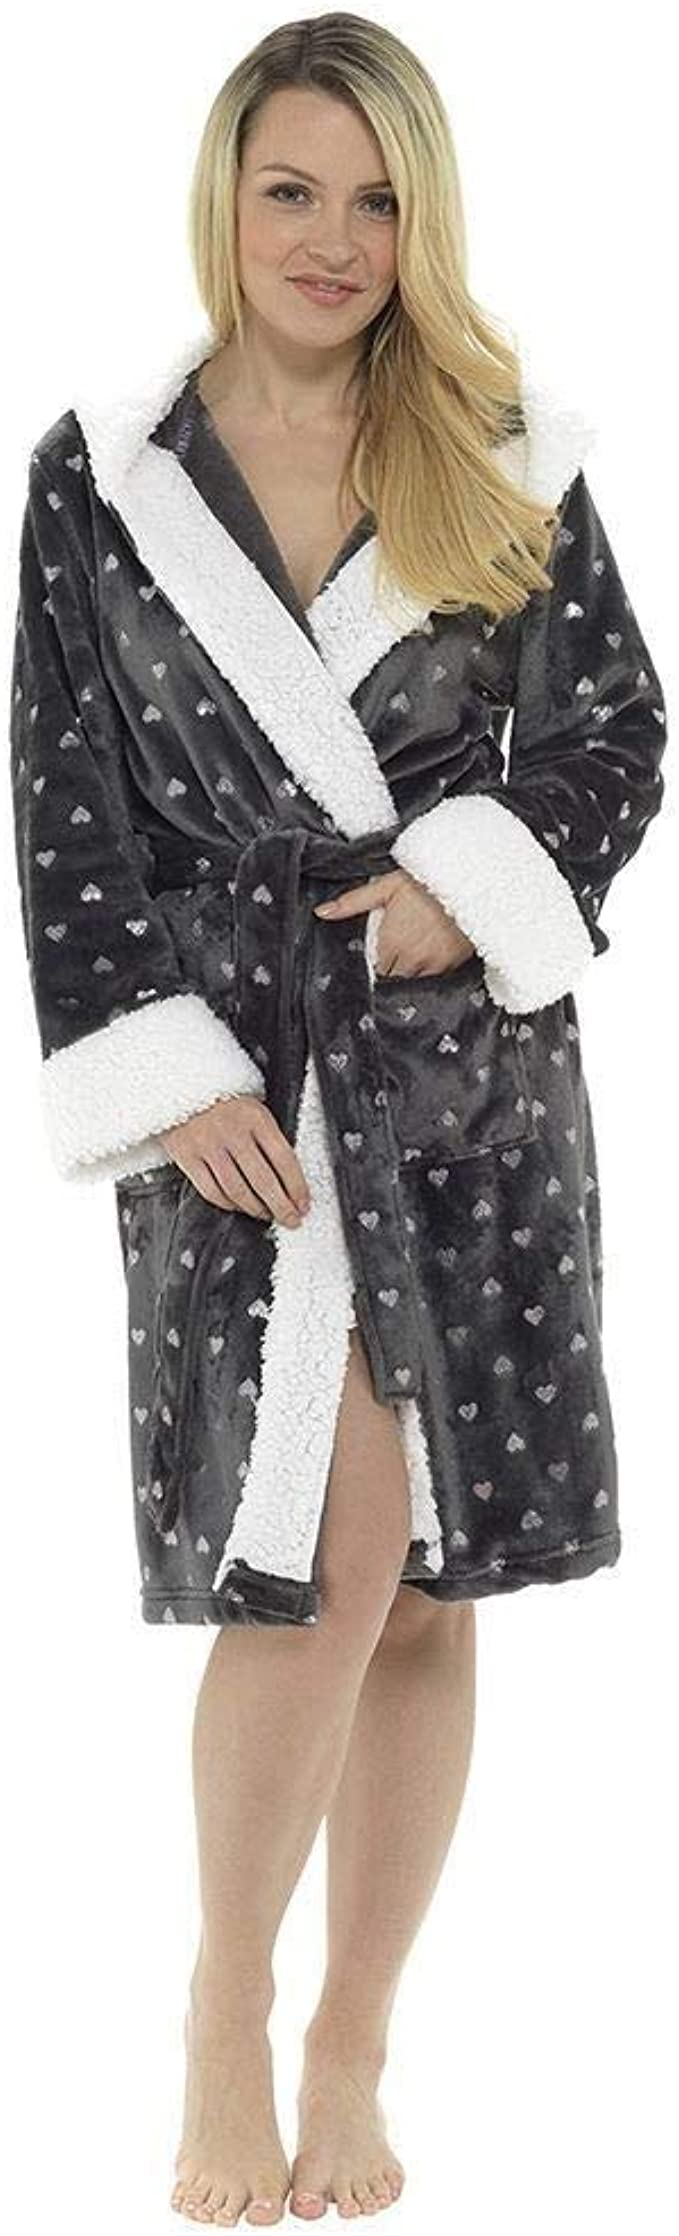 Ladies Super Soft Printed Robe Wrap Hooded Fleece Cosy Warm Dressing Gown